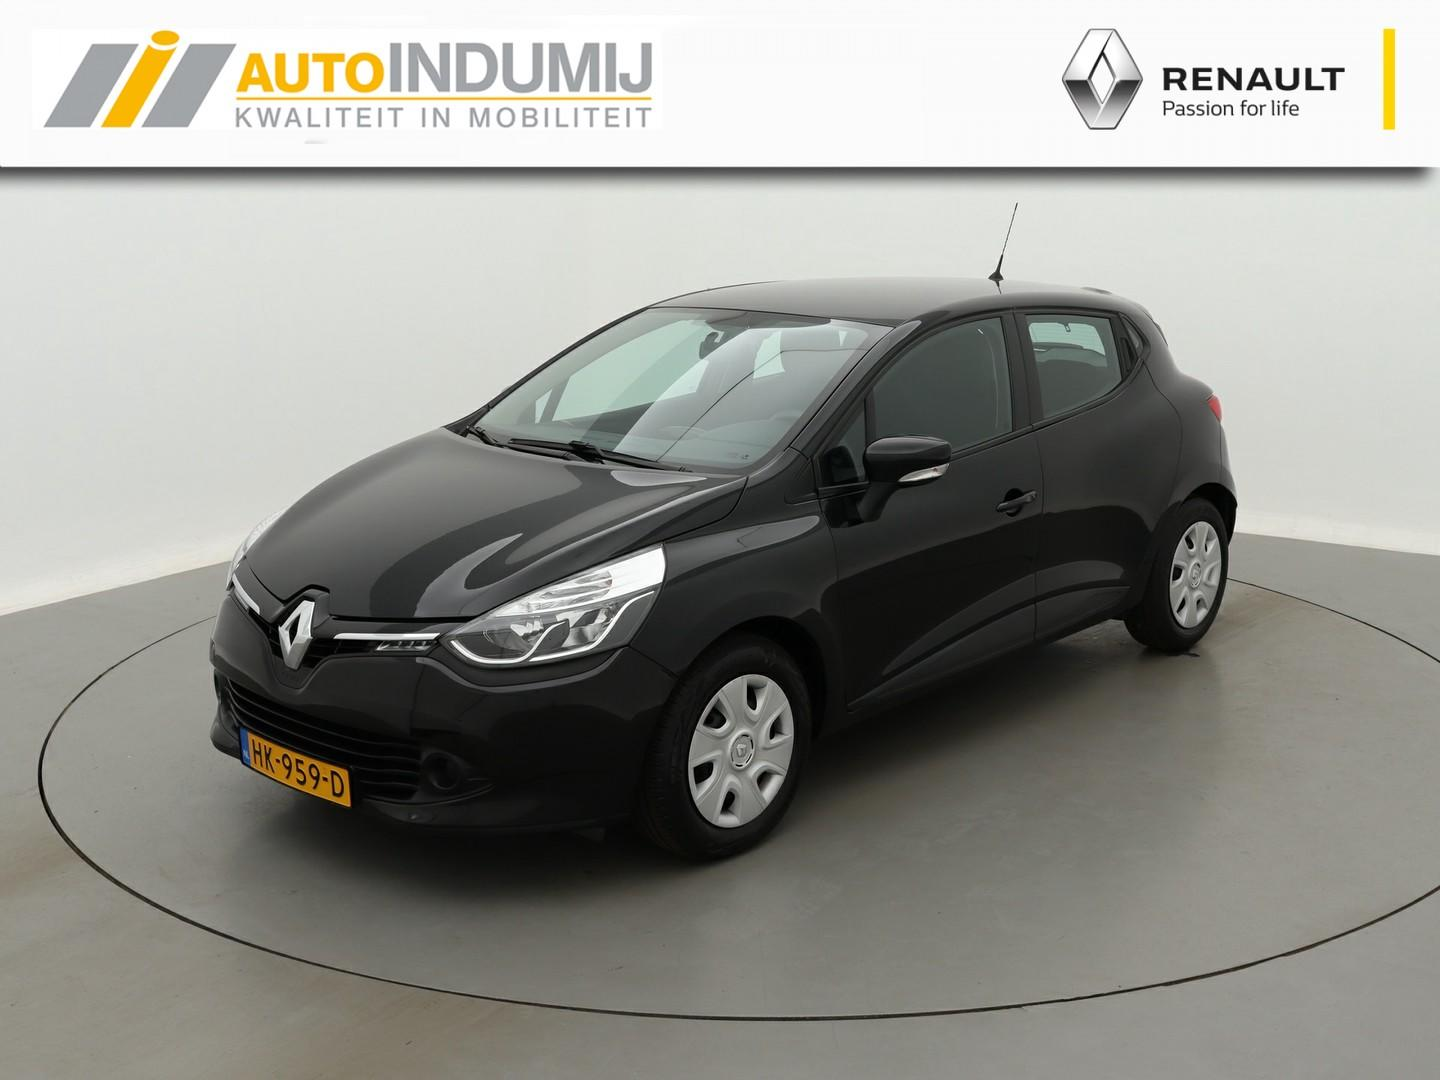 Renault Clio Tce 90 expression / airco / navigatie / bluetooth